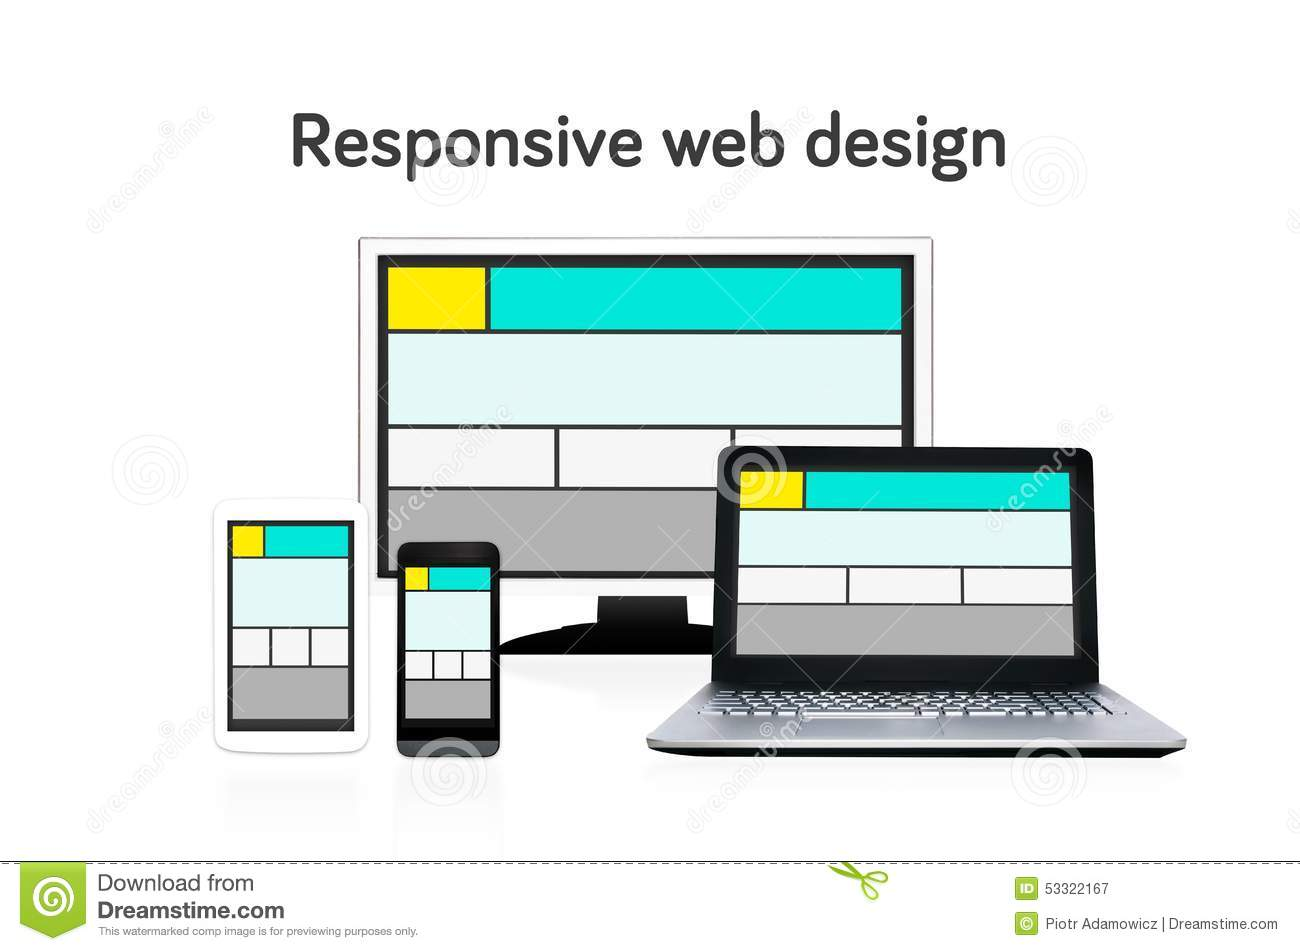 Responsive web design layout on different devices.